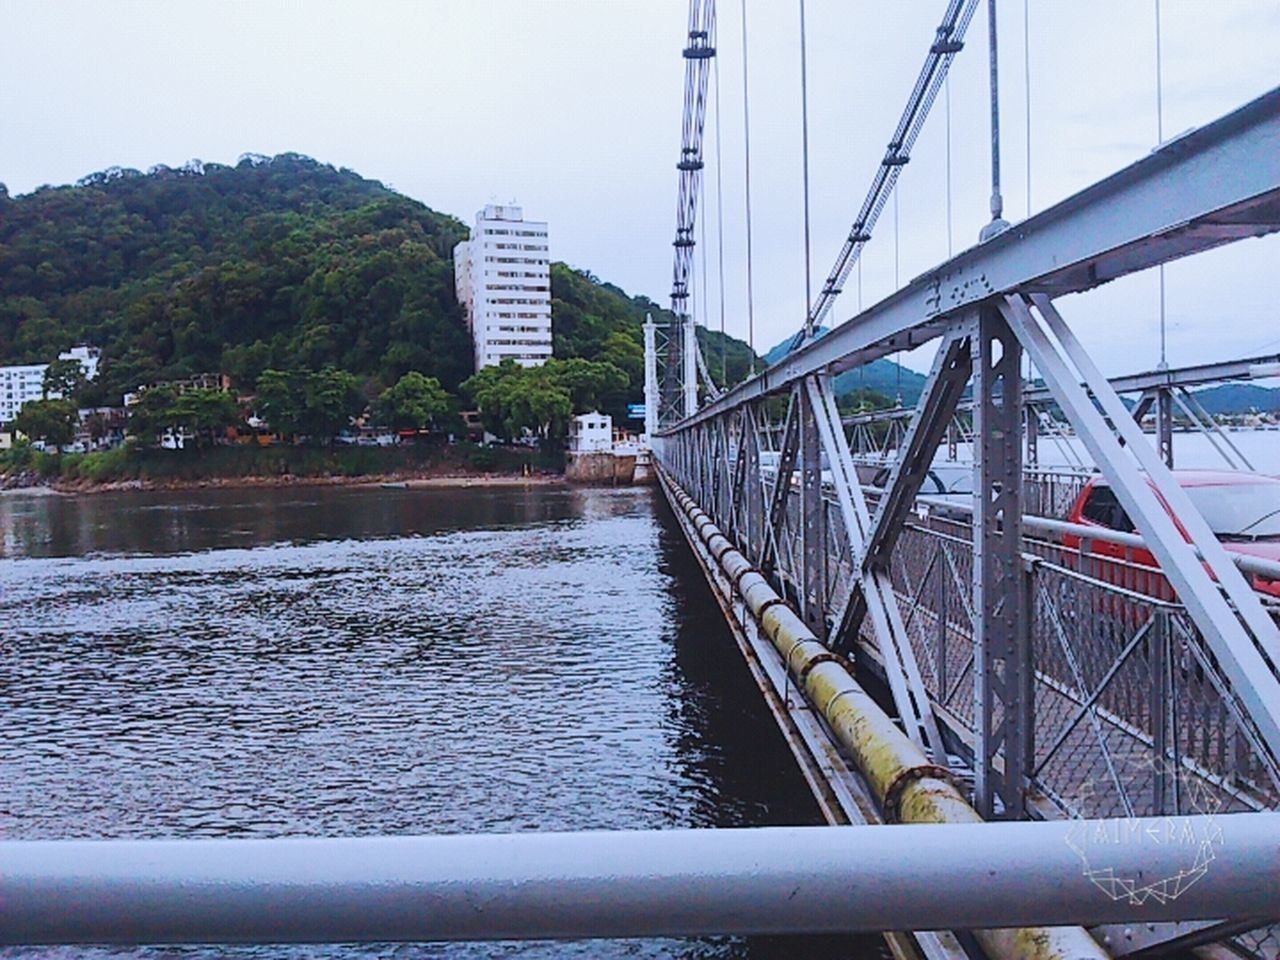 architecture, connection, bridge - man made structure, transportation, day, built structure, water, outdoors, river, no people, building exterior, sky, nature, nautical vessel